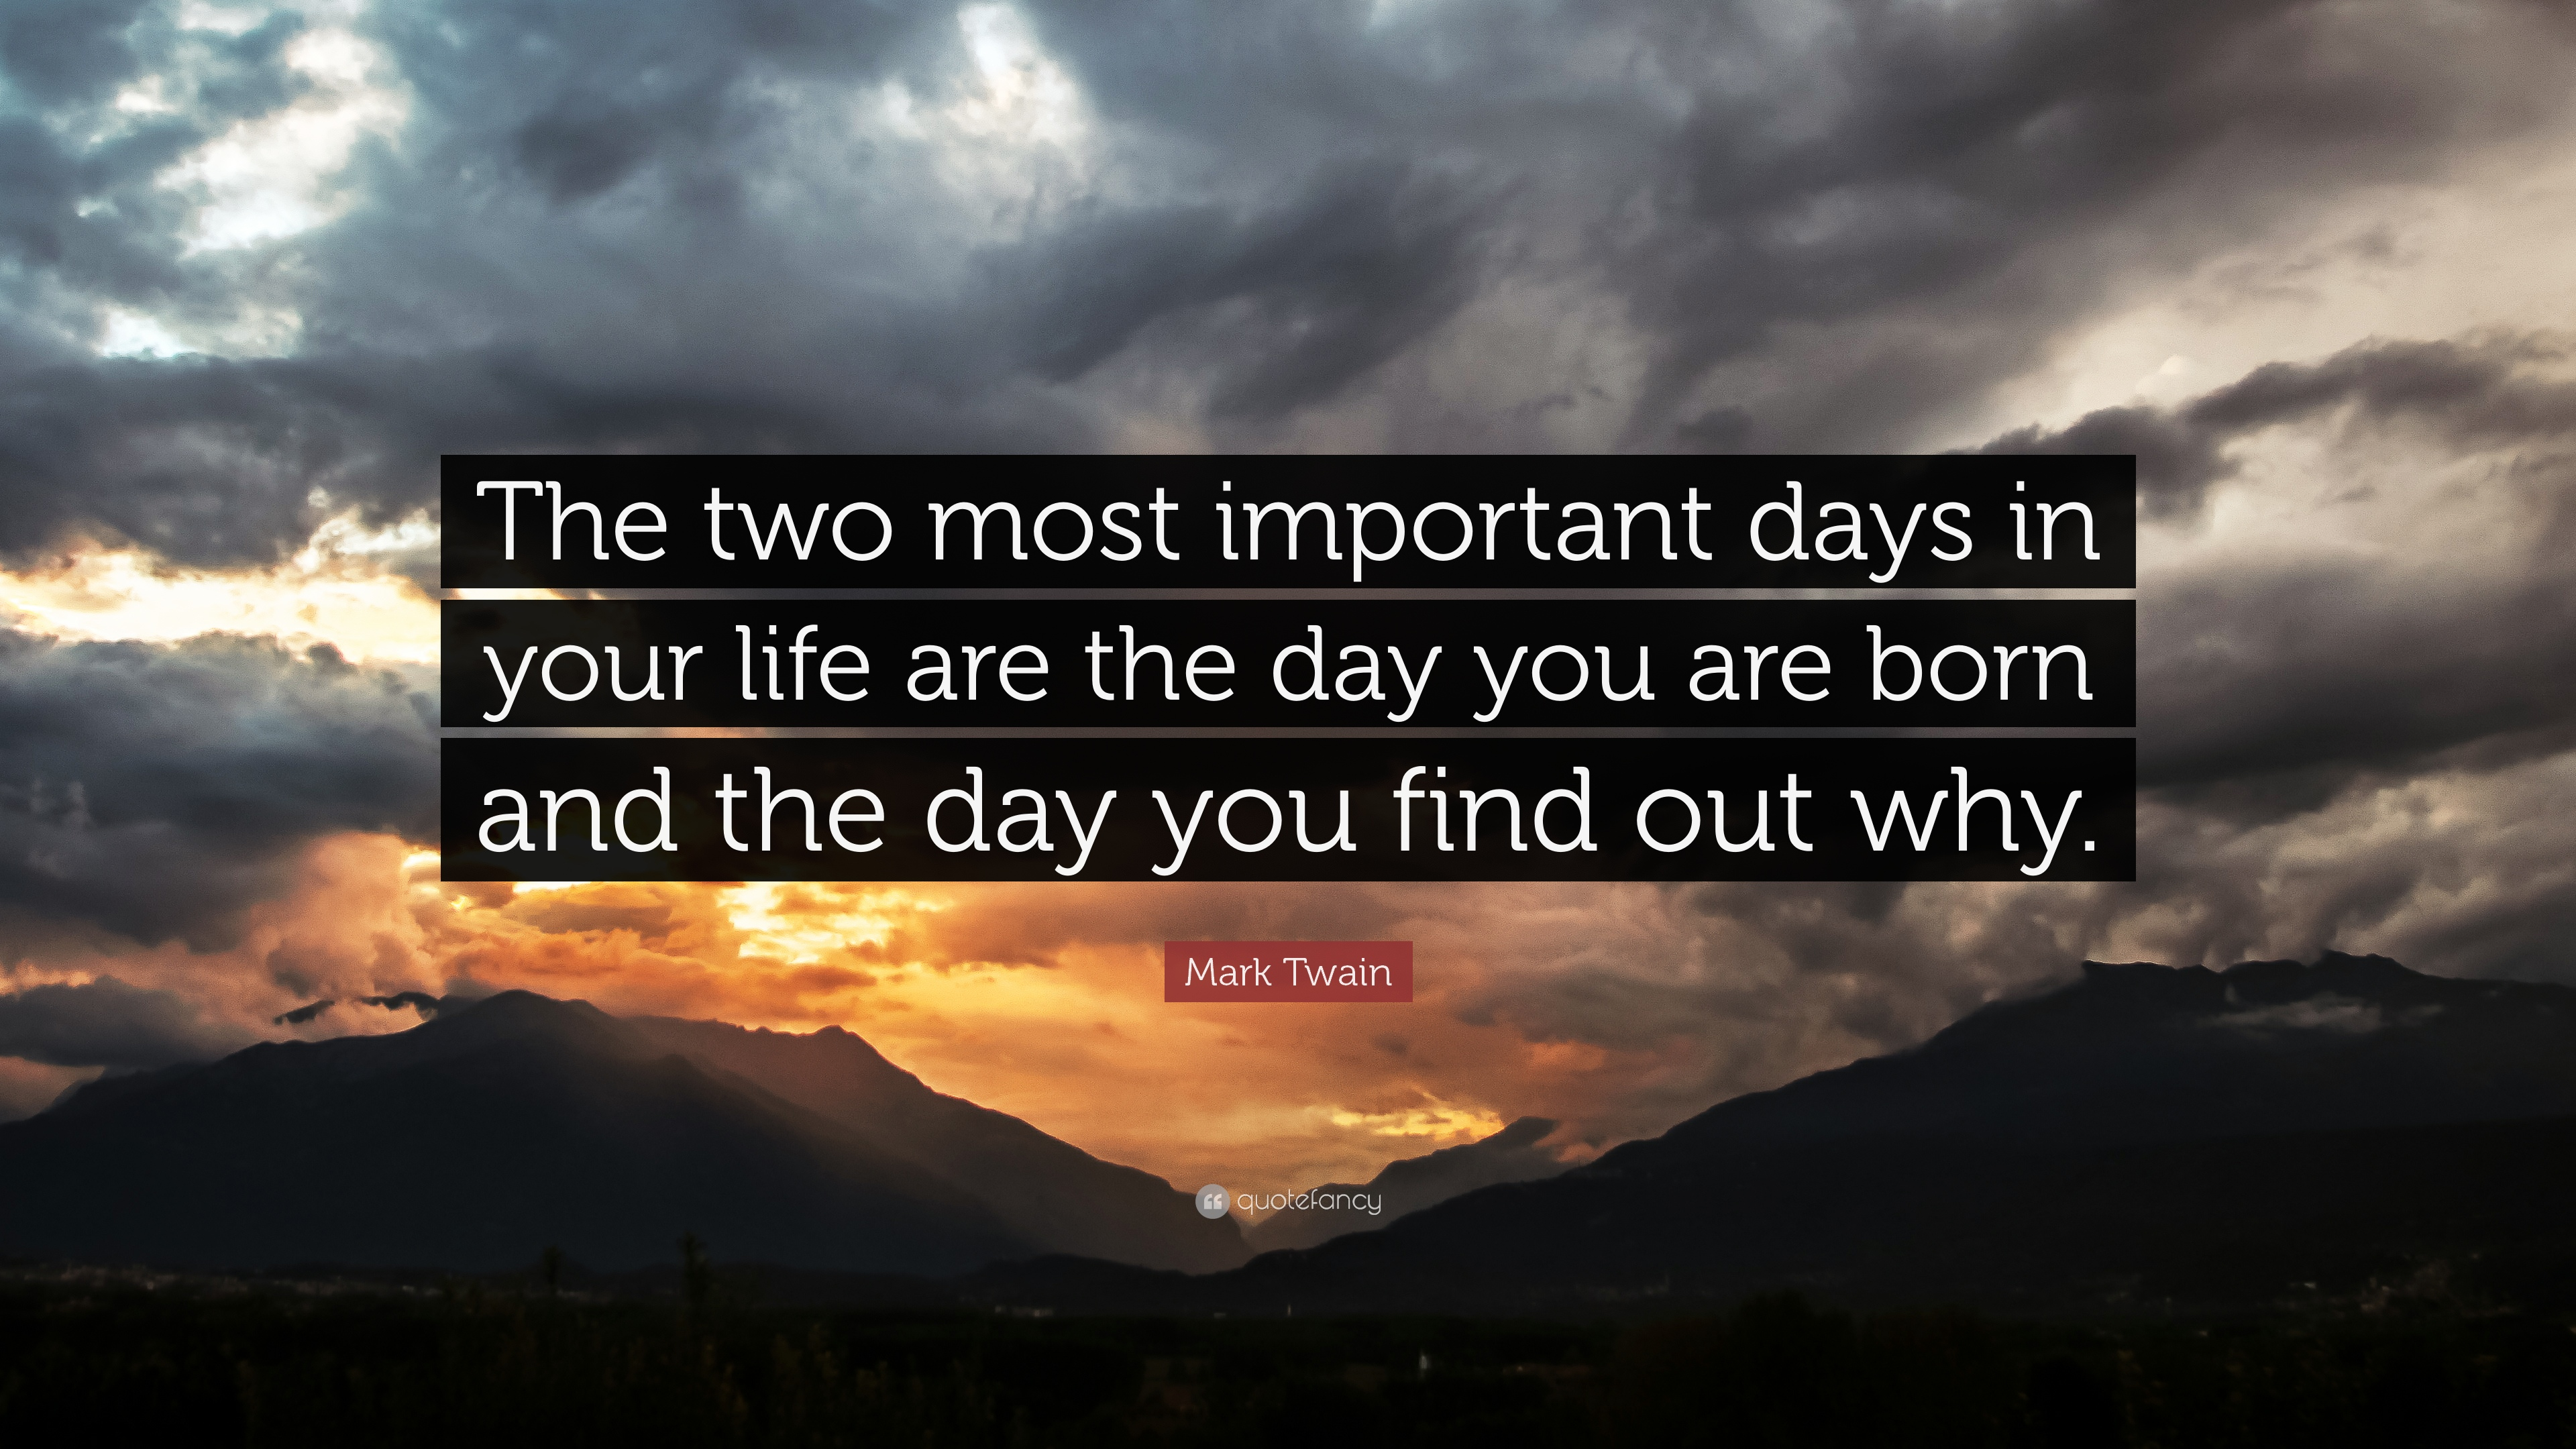 mark twain quote the two most important days in your life are mark twain quote the two most important days in your life are the day